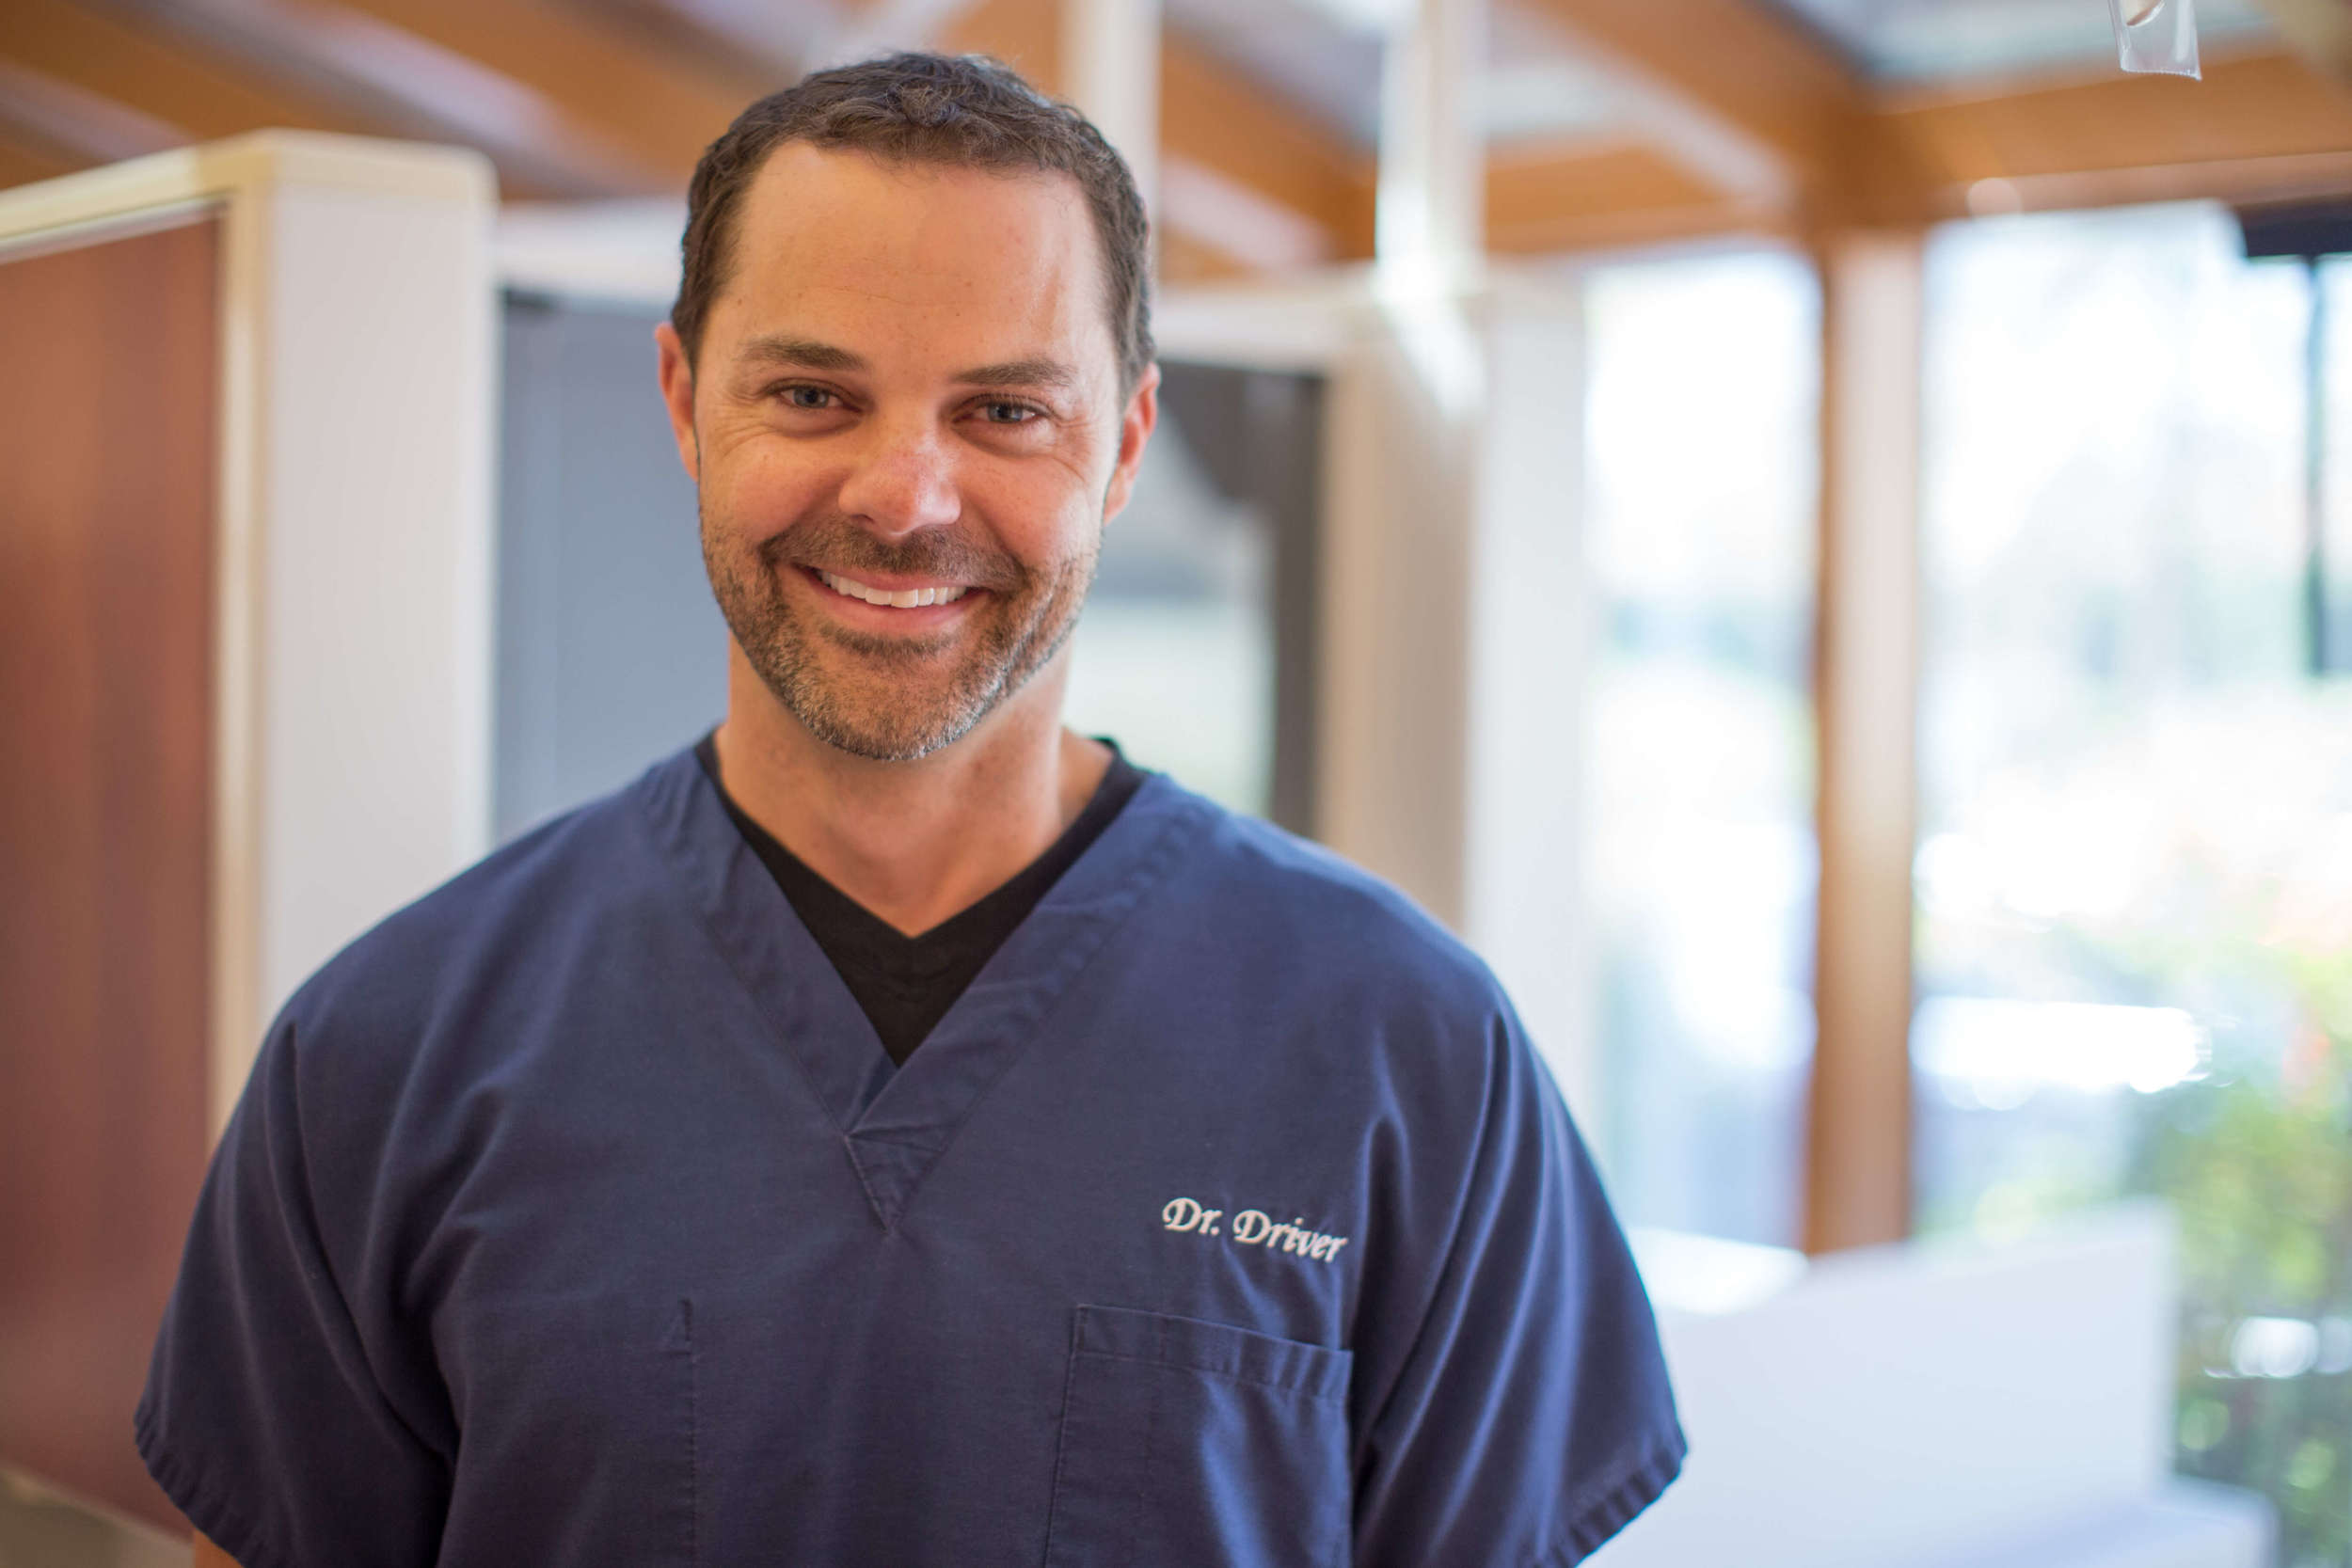 Dr. Eric Driver is a dental specialists at Town Center Dentistry in Rancho Bernardo. He is one of the best dental implant specialists in San Diego. if you want permanent replacements for missing or damaged teeth come to dr. eric driver in town center dentistry rancho bernardo